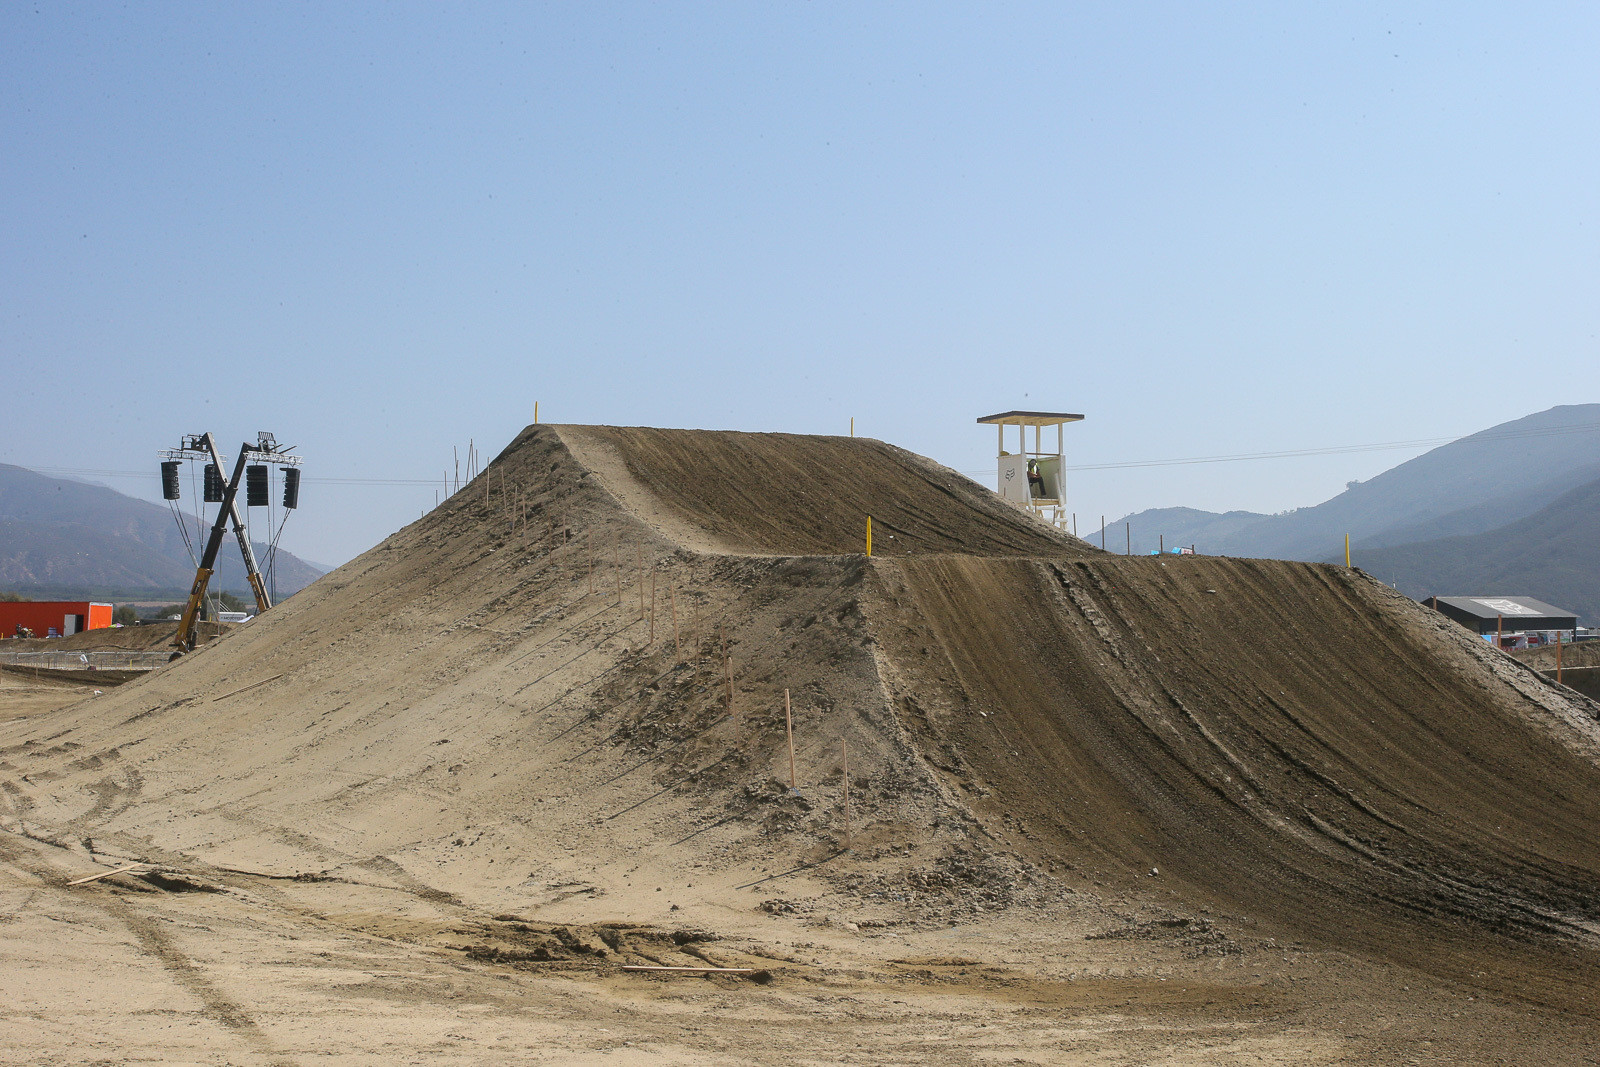 There was some serious dirt moving going on at Fox Raceway before the final National of the season. It's almost hard to show the scale of this step-up.